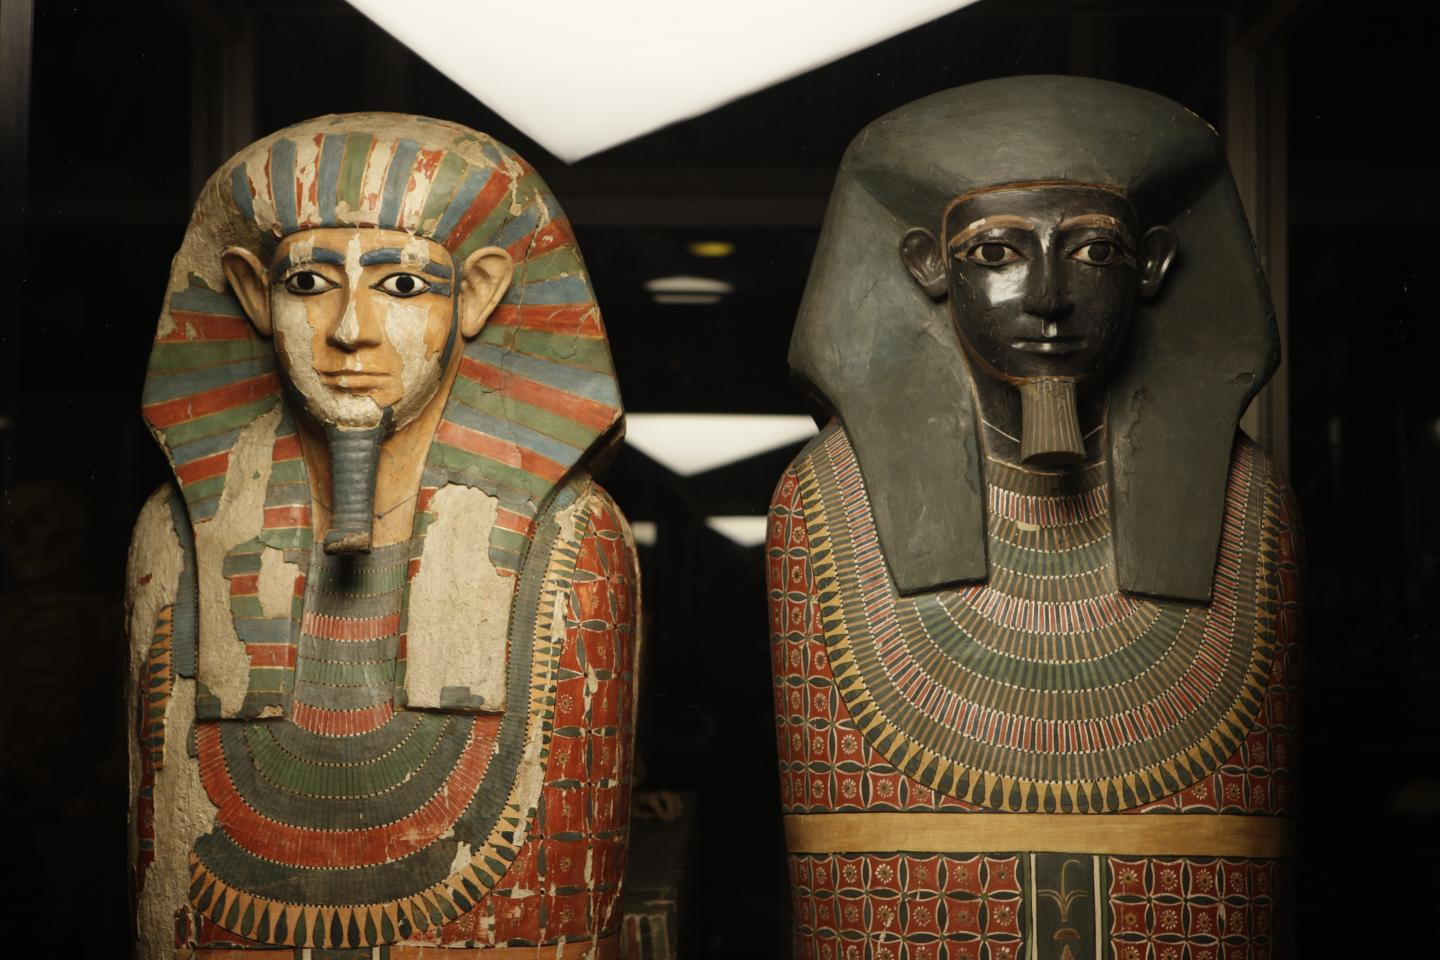 Mummy Mystery Solved – The History News of the Week